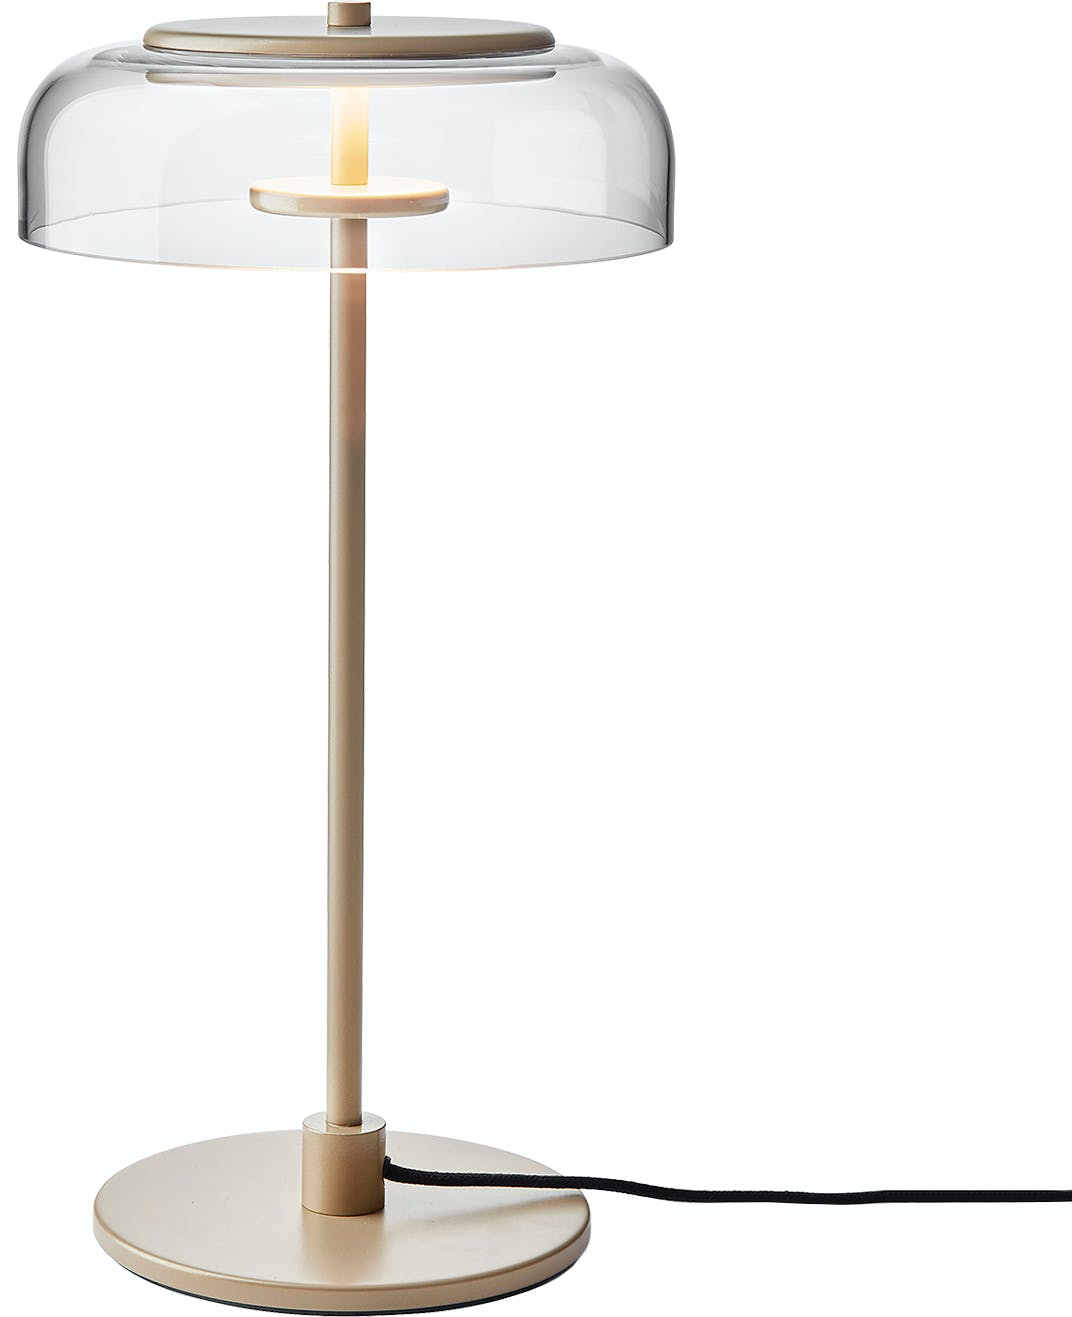 Nuura Blossi Table Lamp Thumb Haute Living